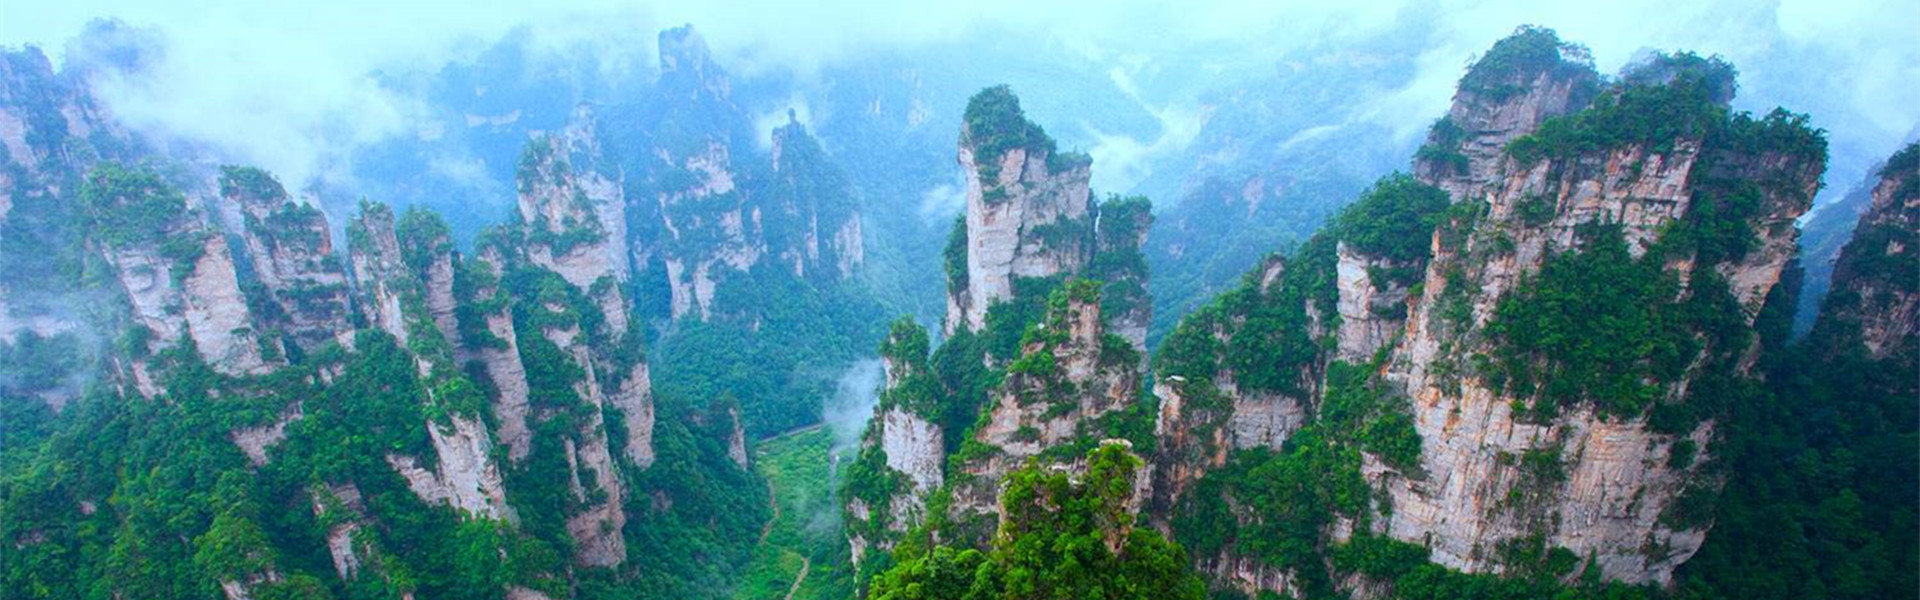 Zhangjiajie Tour by Types